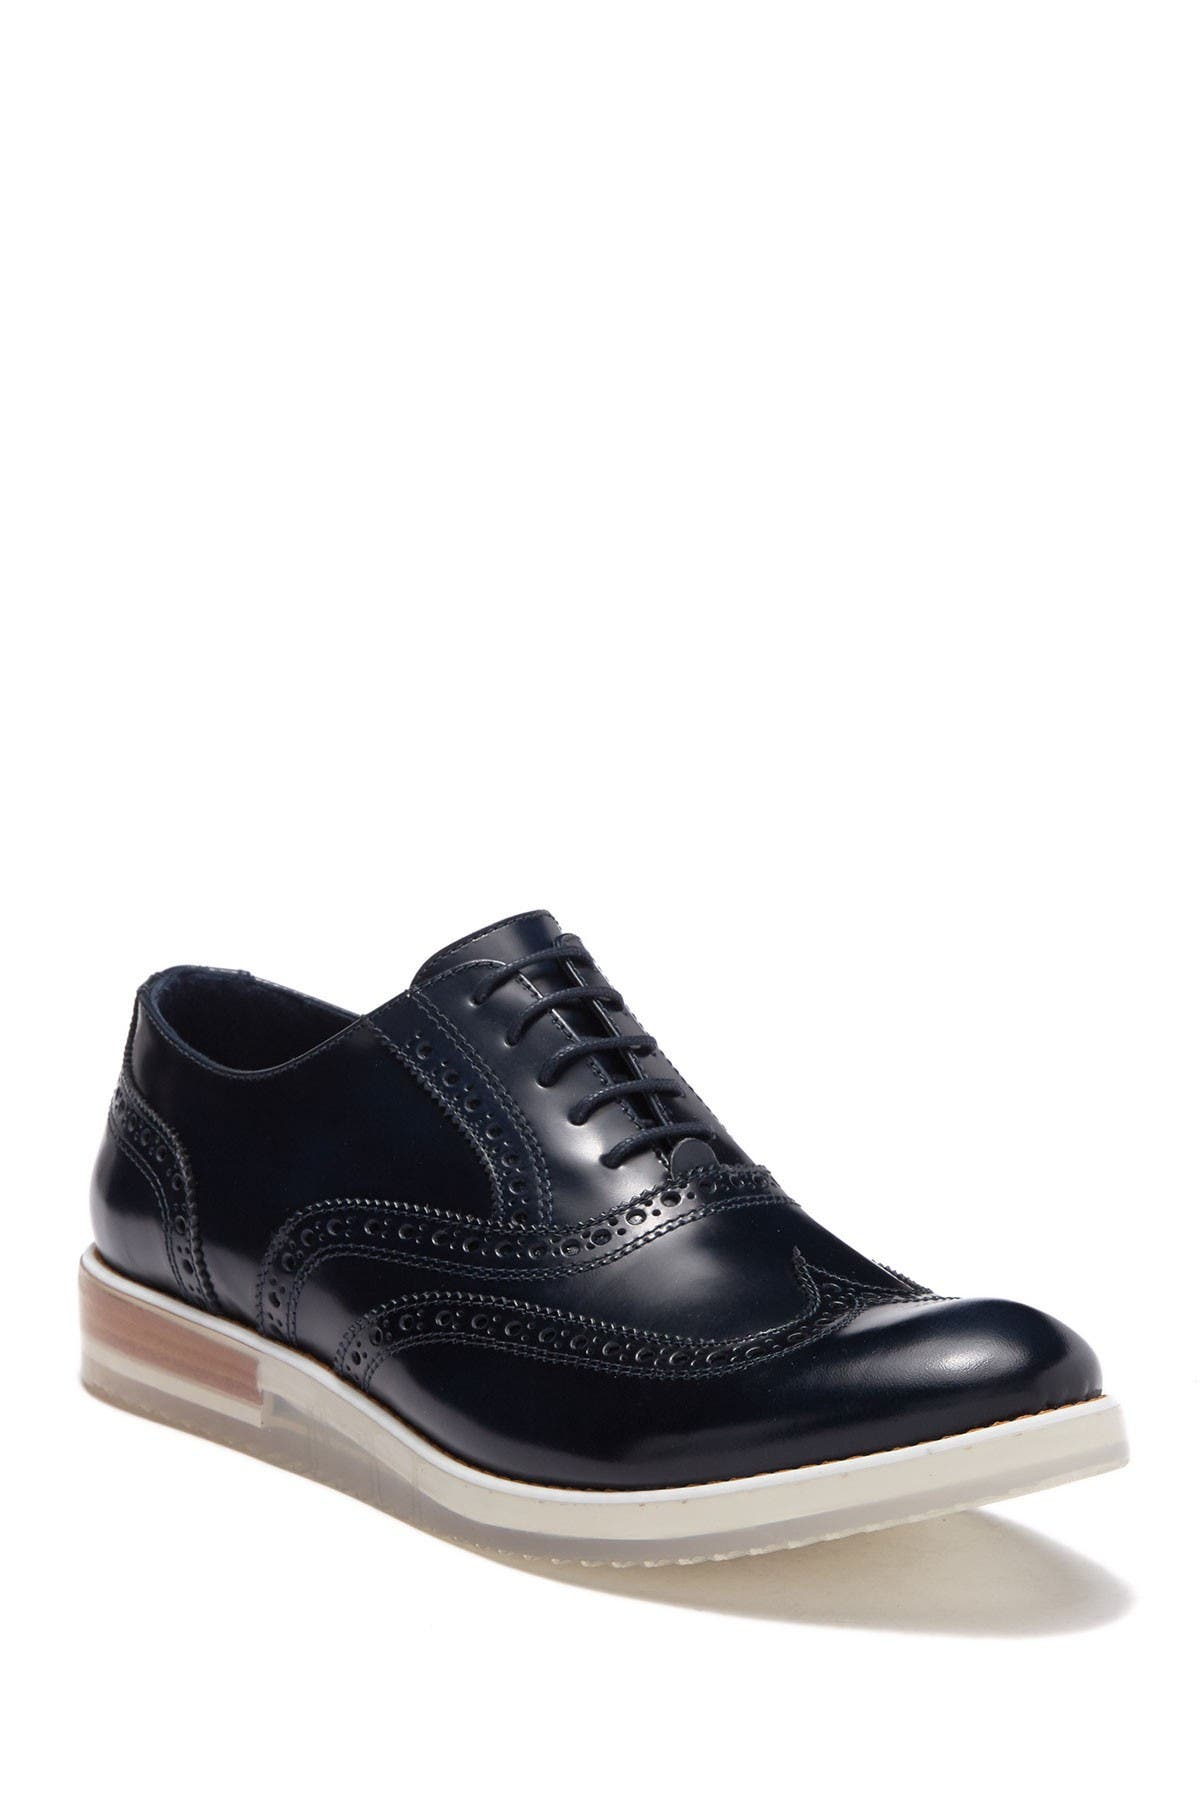 Image of Bugatchi Palermo Leather Brogue Derby